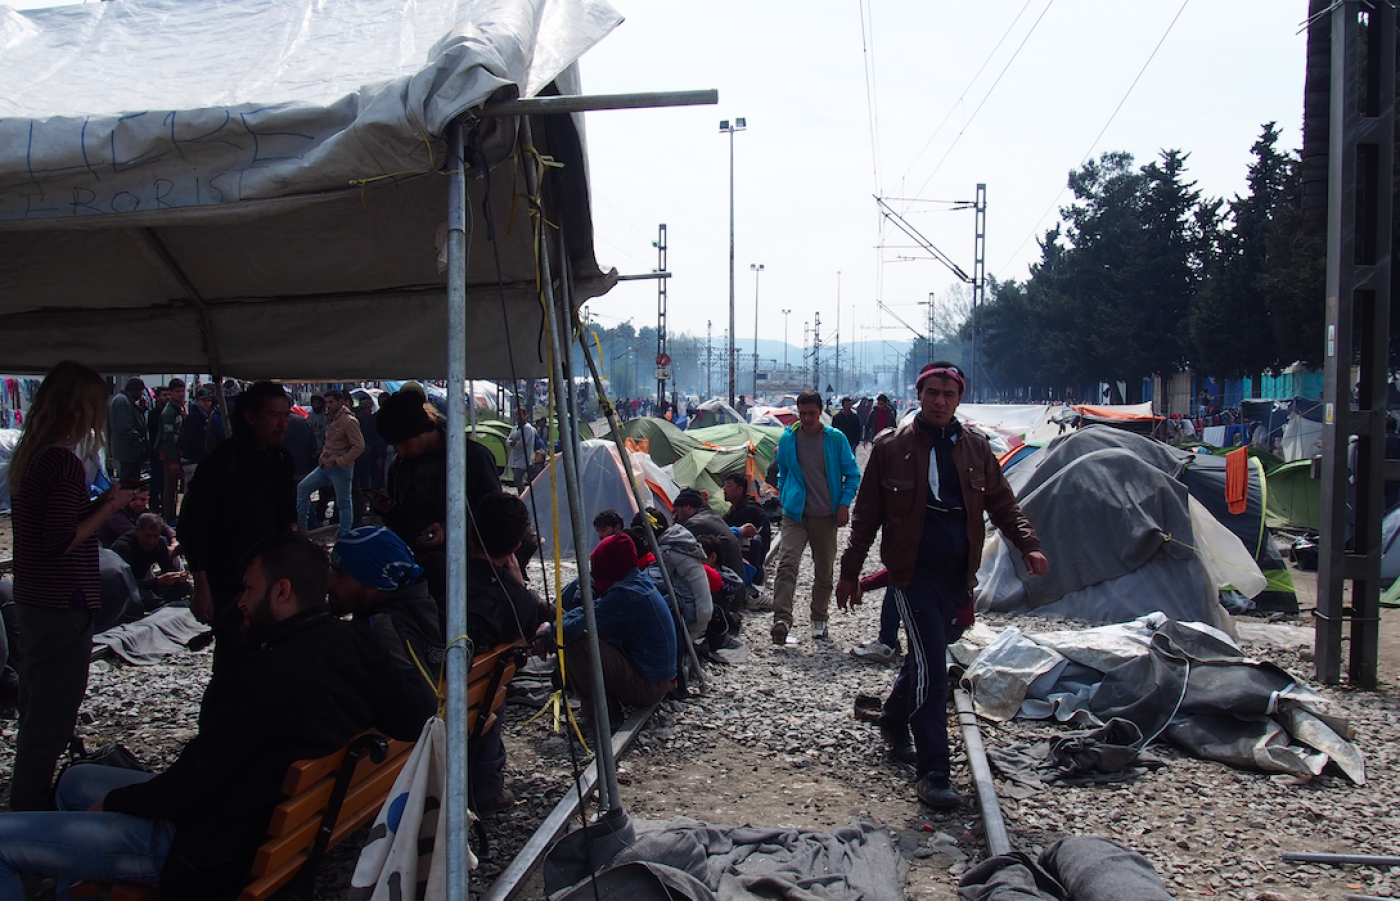 Refugees become smugglers following EU-Turkey deal | Middle East Eye